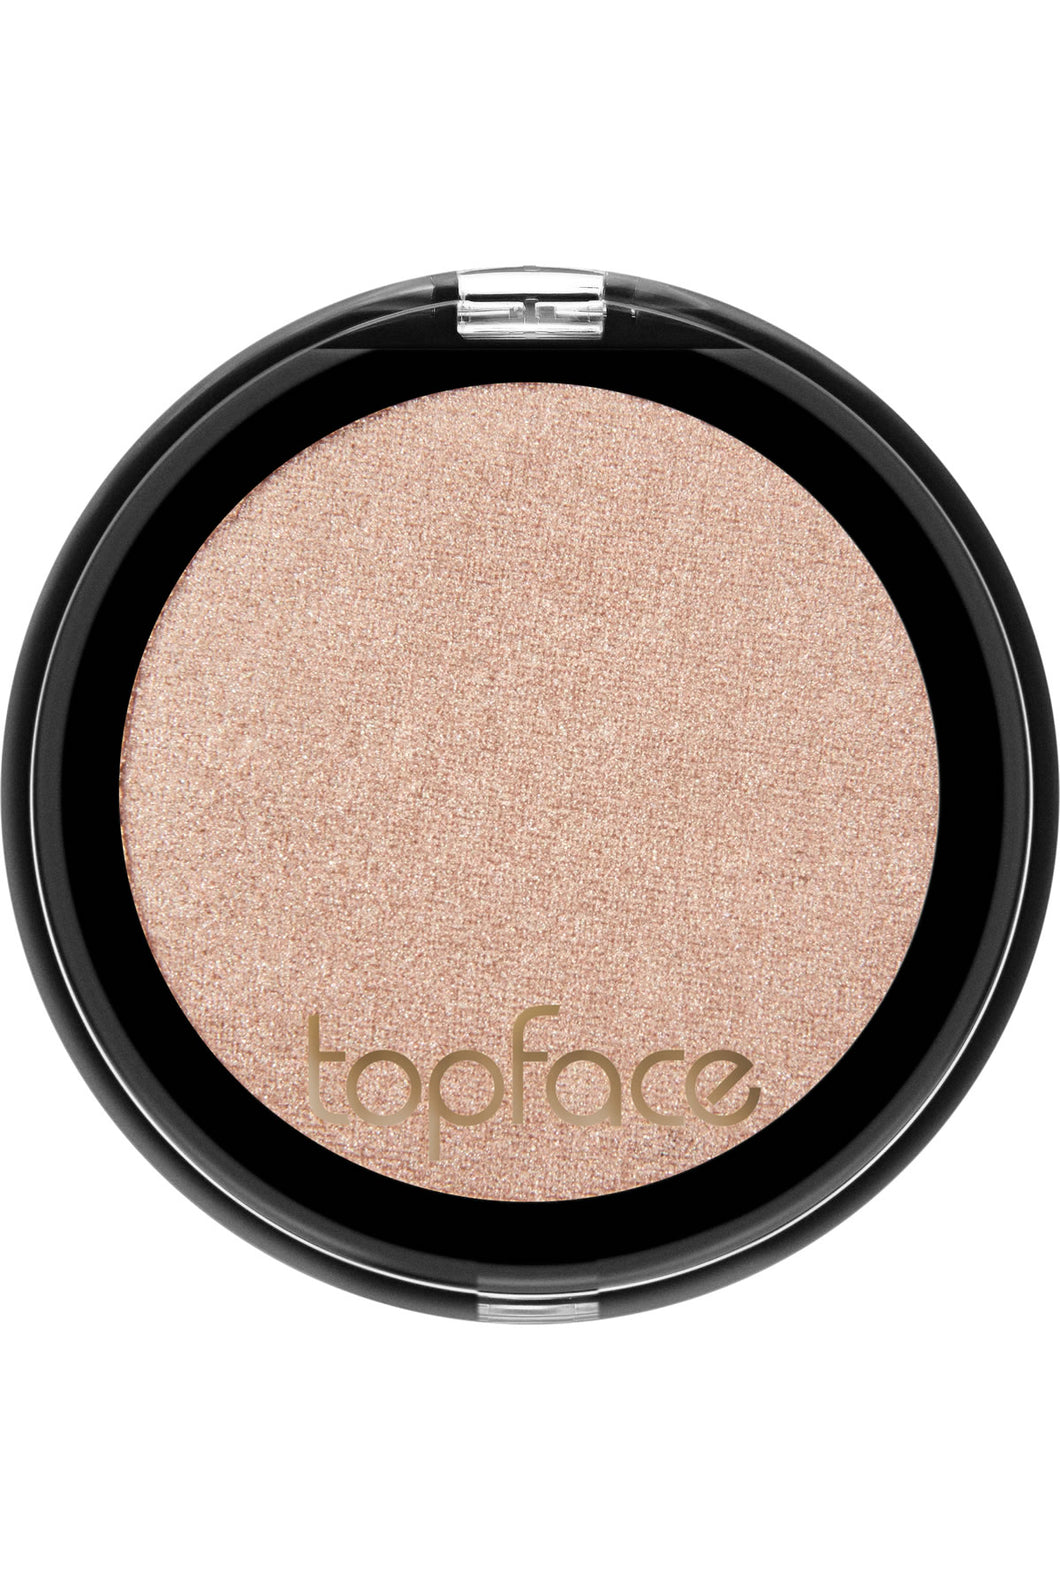 Topface - Instyle Pearl Mono Eyeshadow - 106 - Preppy Ombre